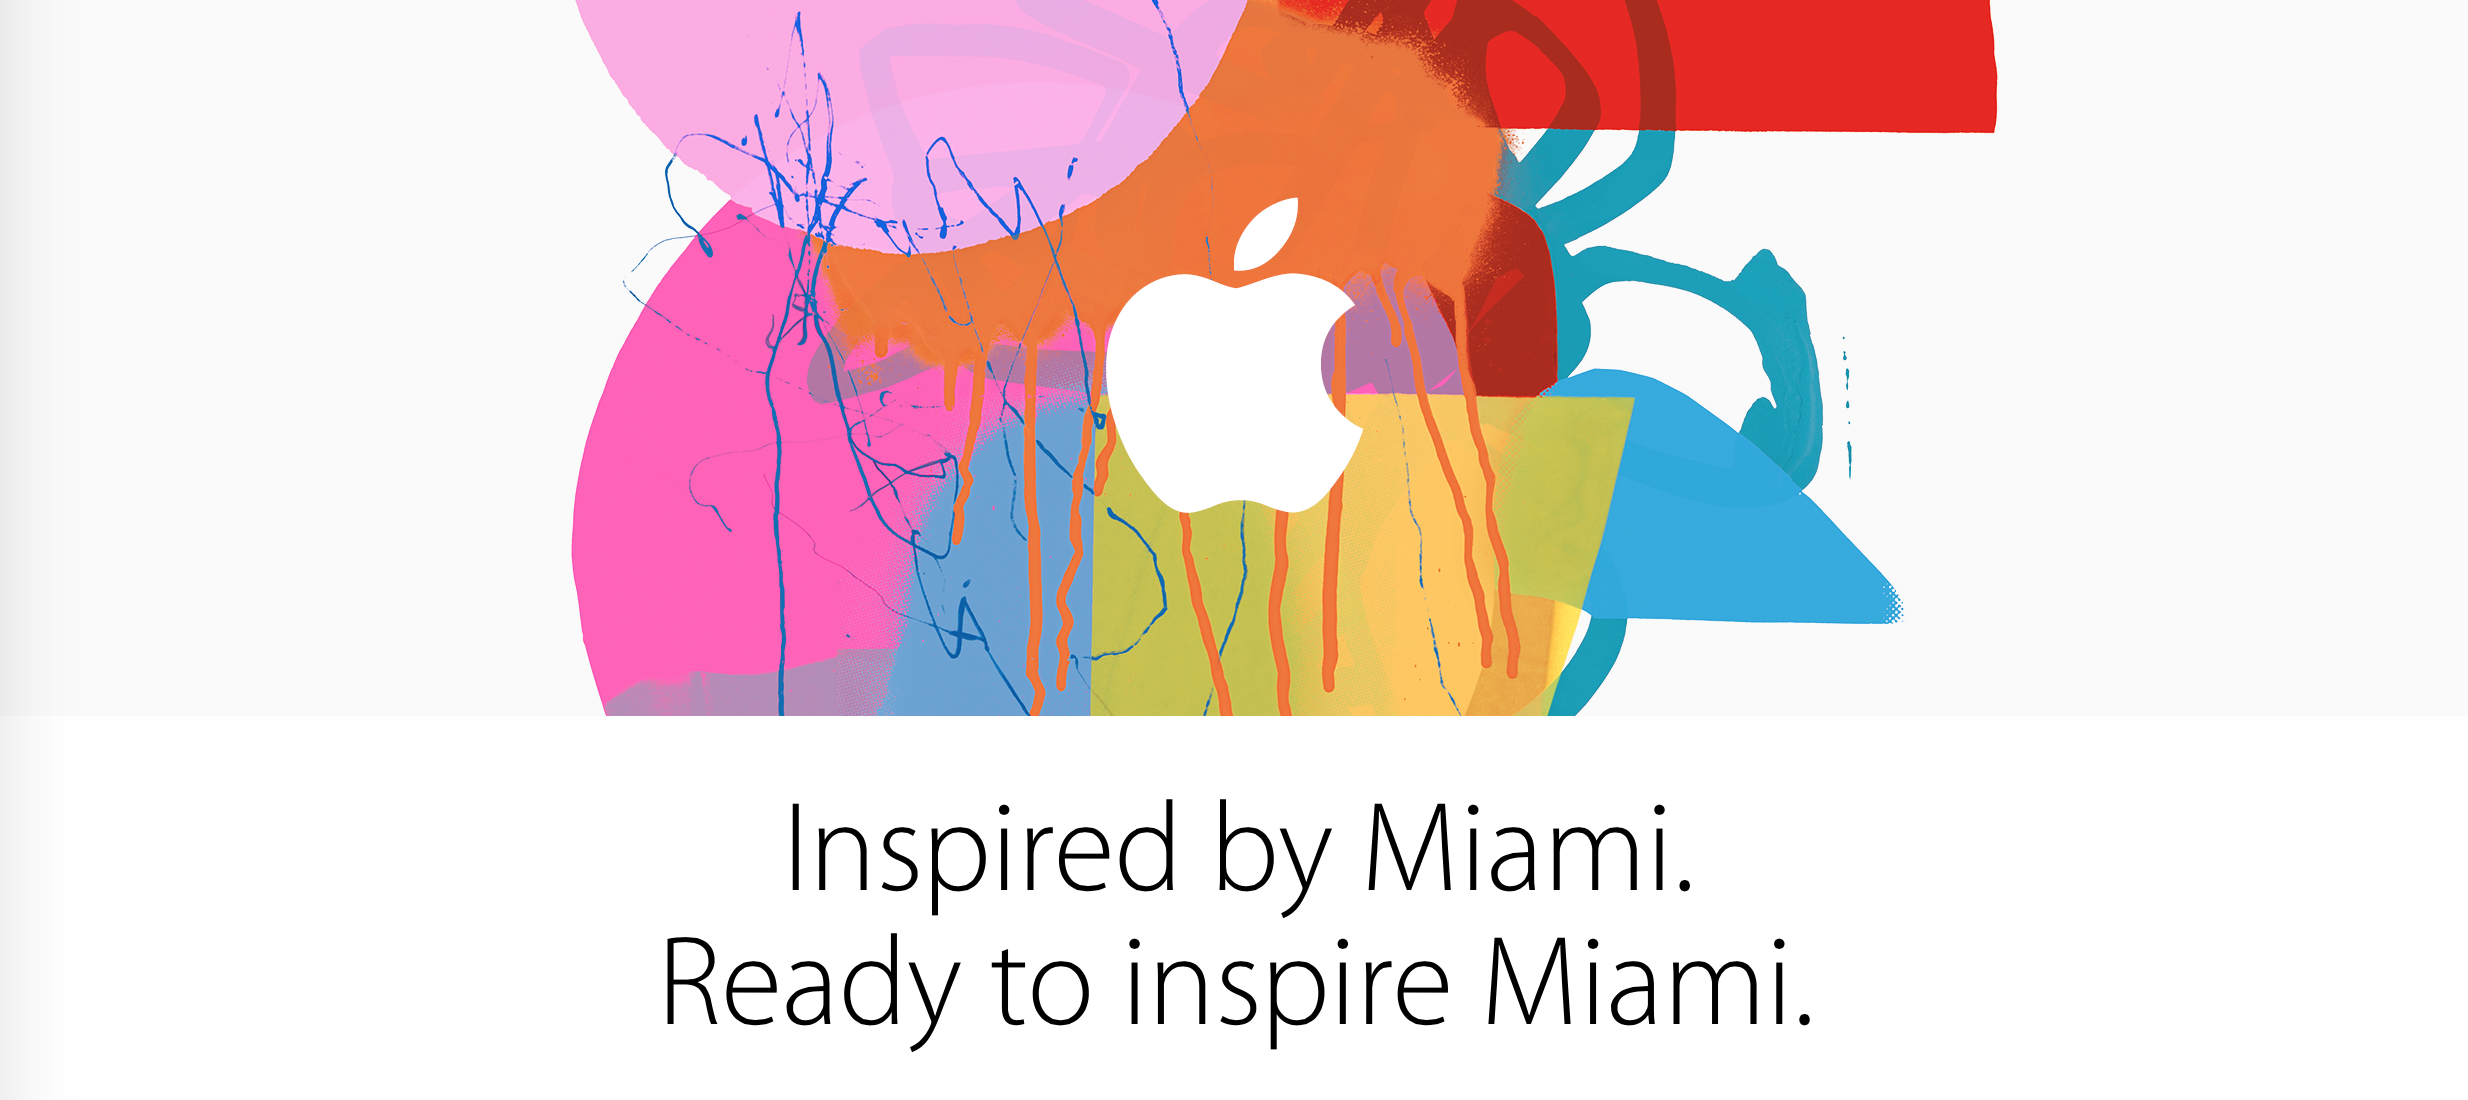 Apple's new Florida store to feature artwork from Hense, will also open on Watch launch day